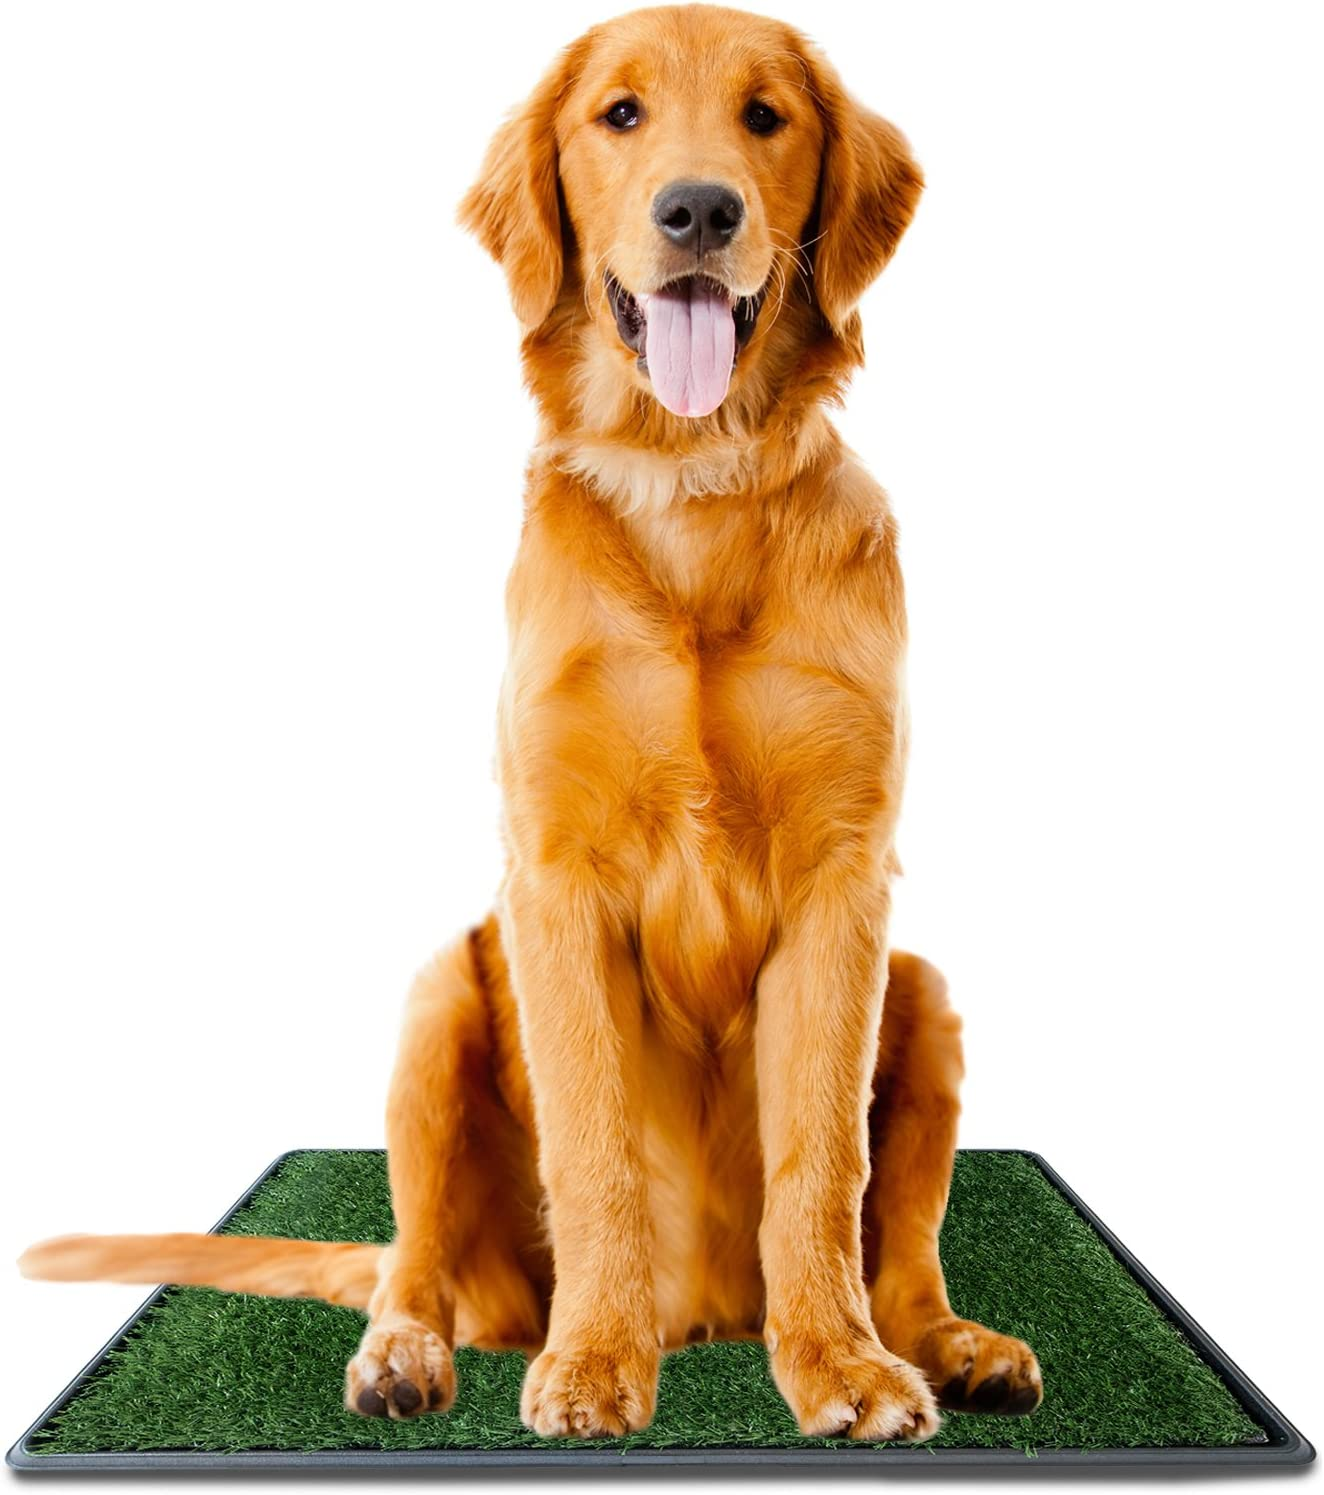 """Ideas In Life Dog Potty Grass Pee Pad – Large 20"""" x 30 Artificial Pet Grass Patch for Dogs Indoor Outdoor Litter Box - e-Book for Potty Training"""